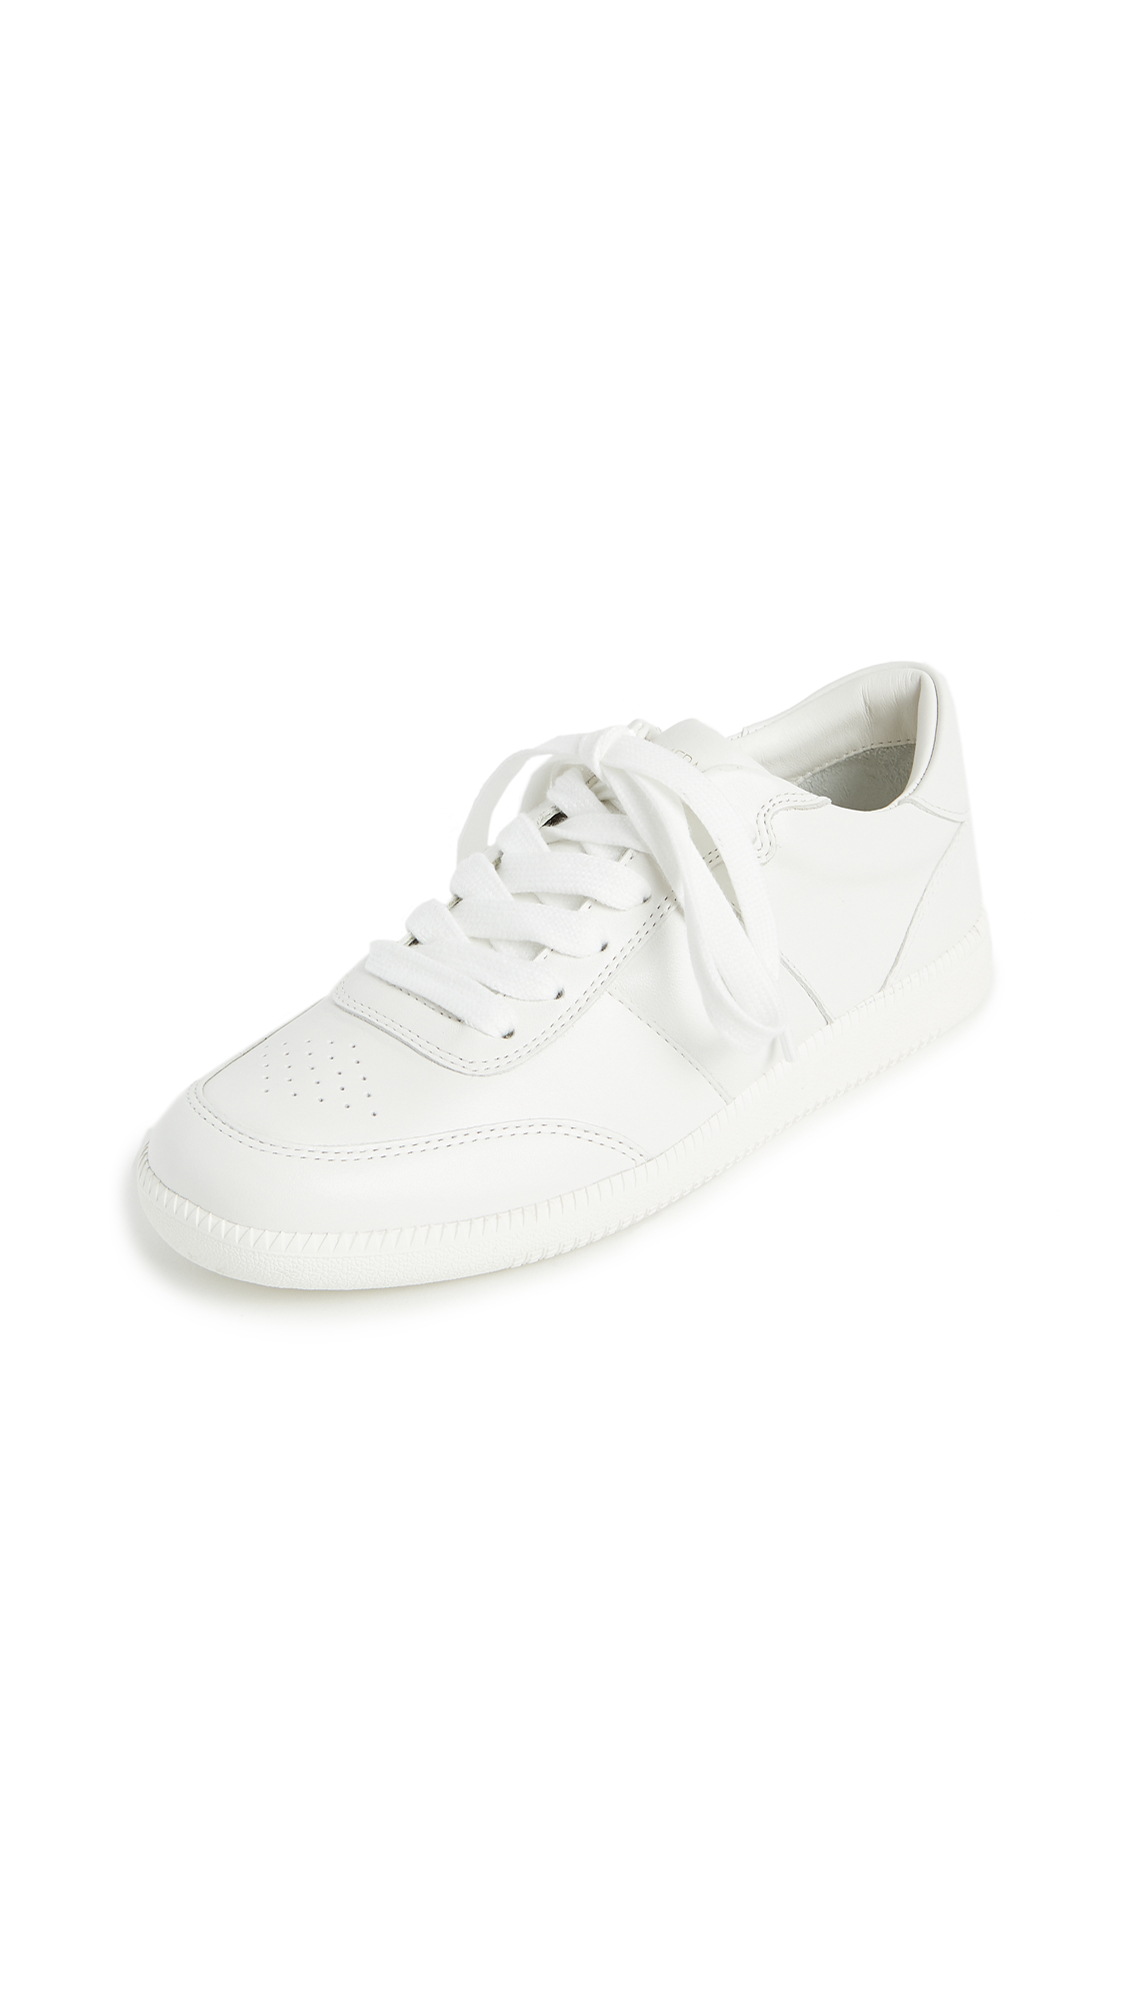 Zimmermann Low Top Retro Sneakers